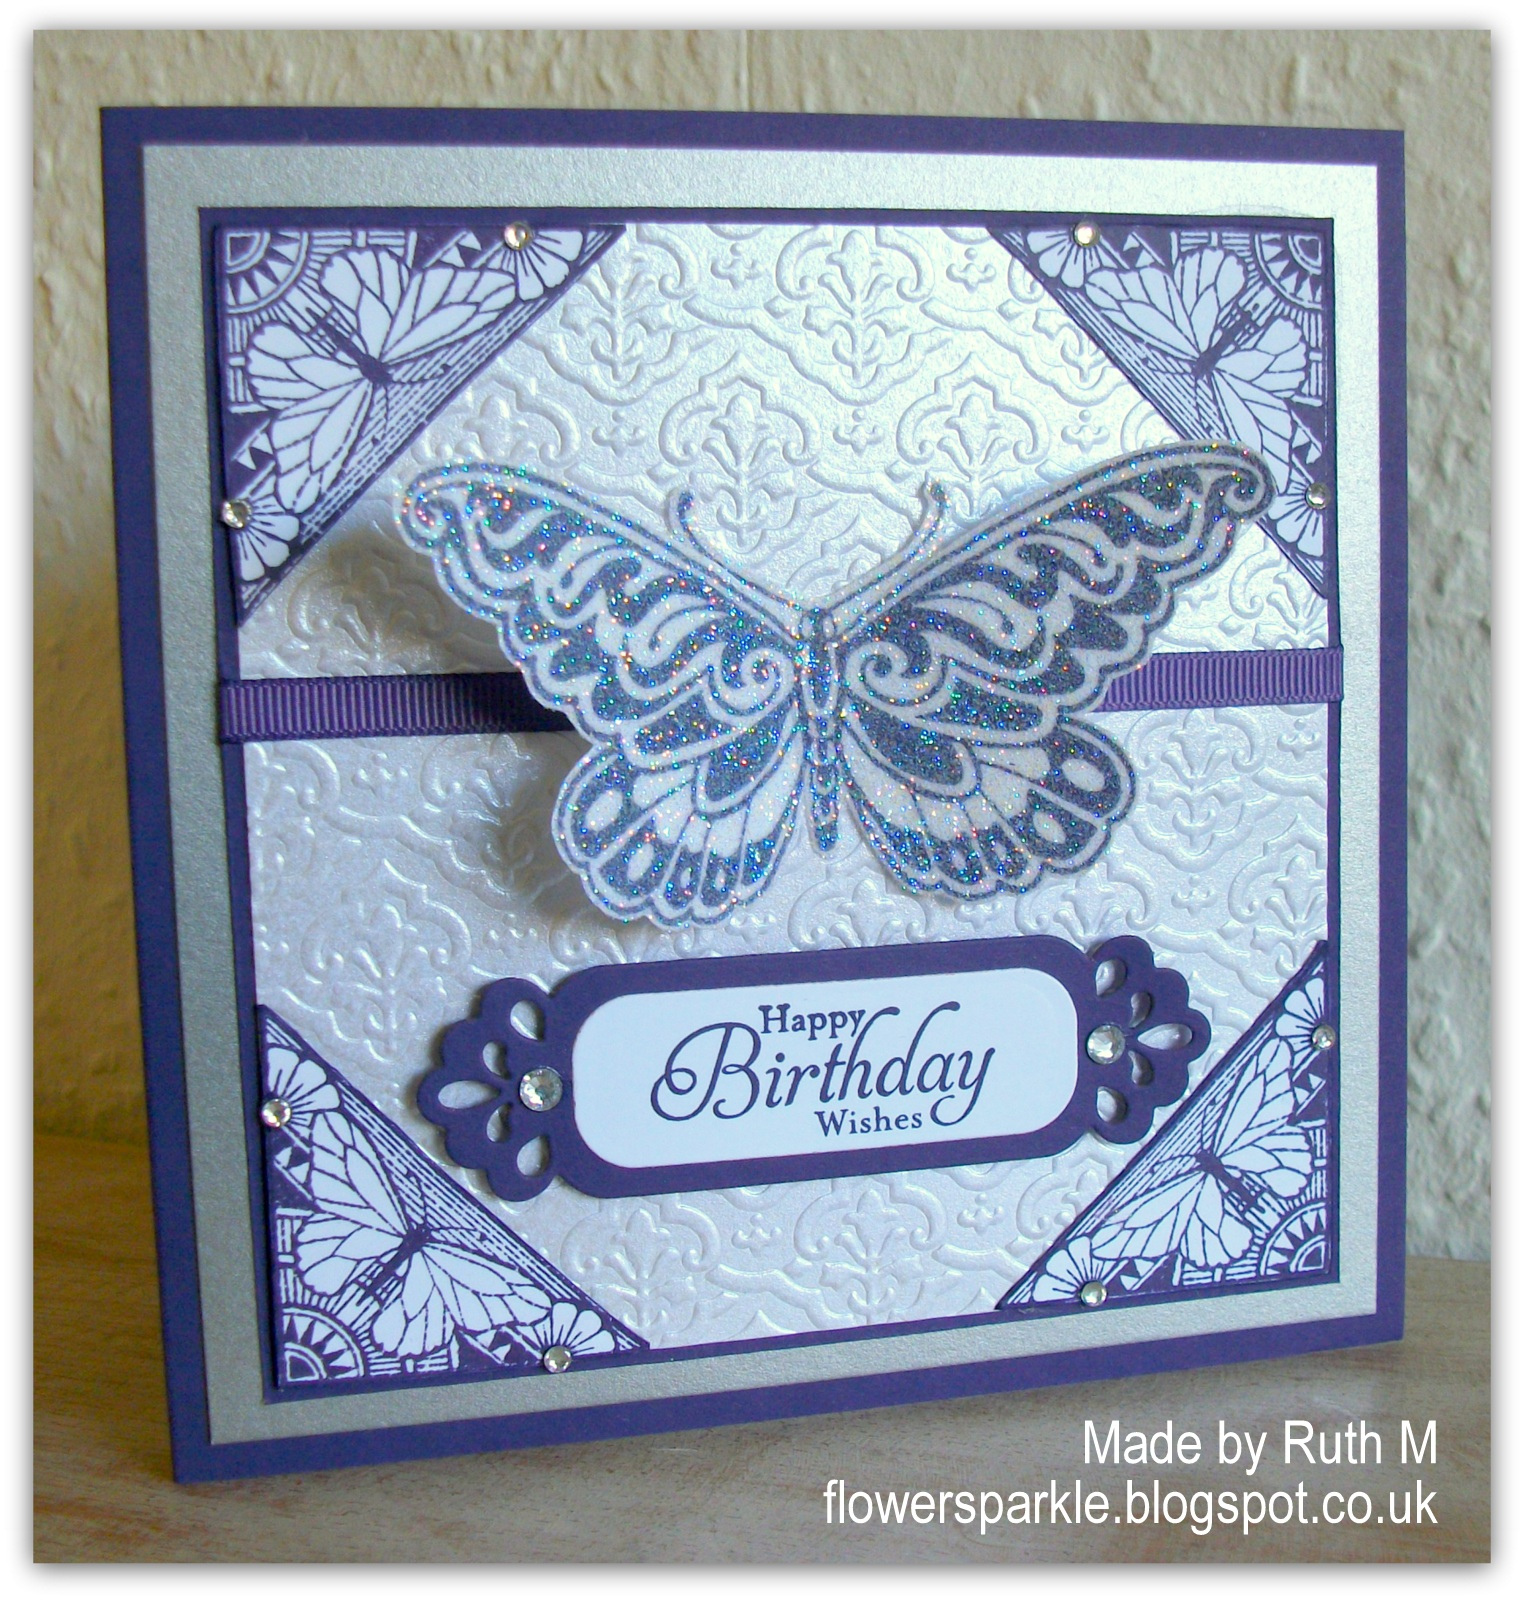 Flower Sparkle Sparkly Butterfly Happy Birthday Wishes Card Happy Birthday Wishes Butterfly